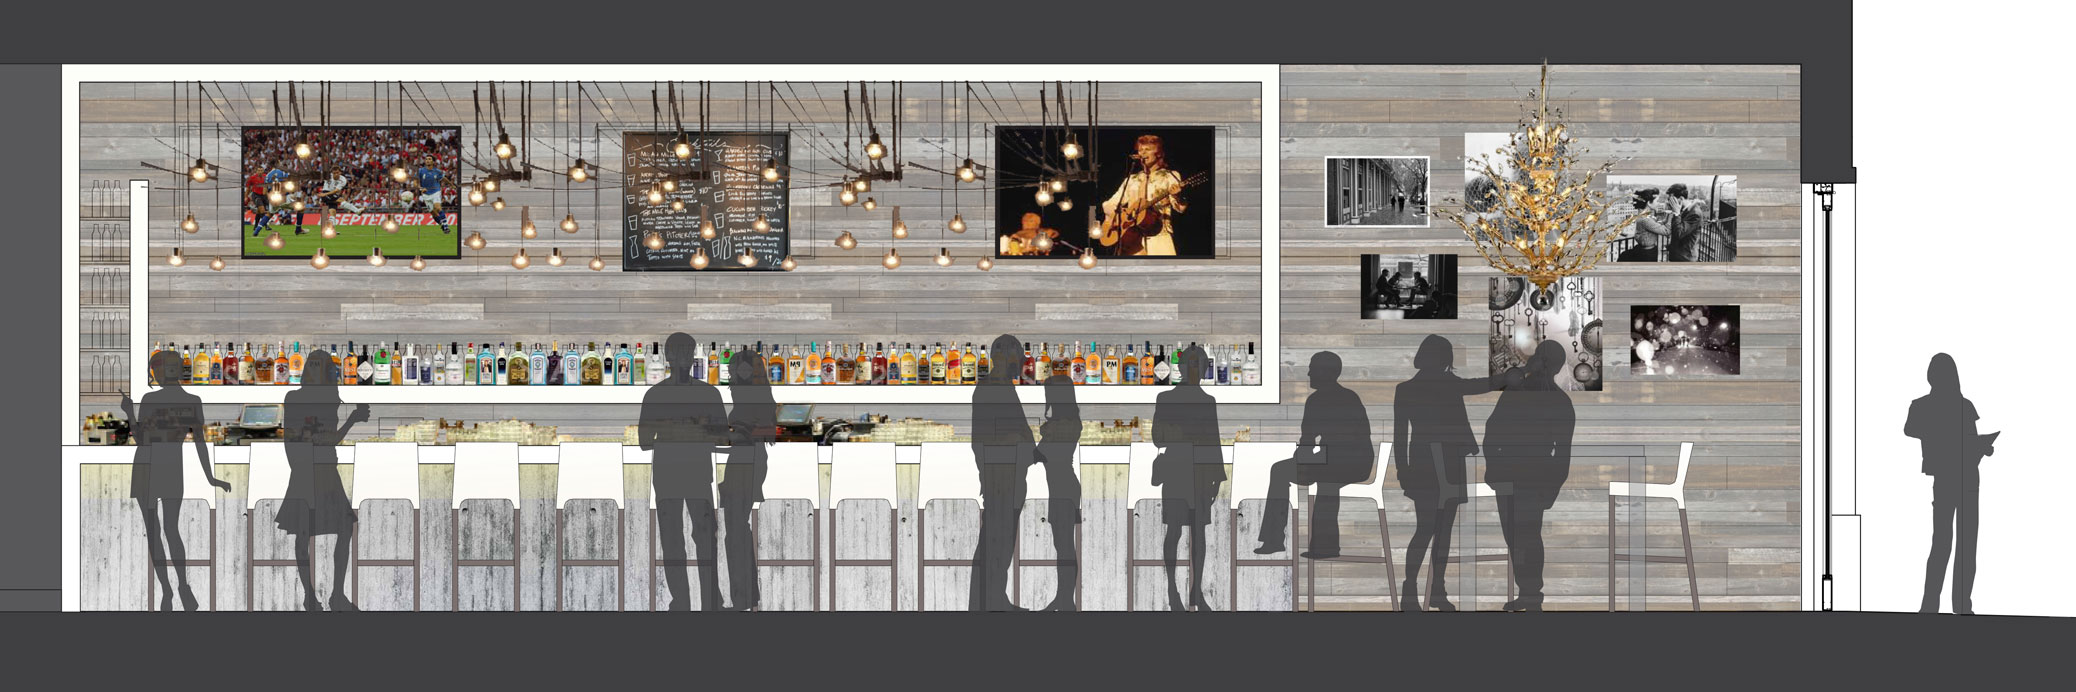 Hobnob Kitchen and Bar : Commercial Work || David Poorman Architect